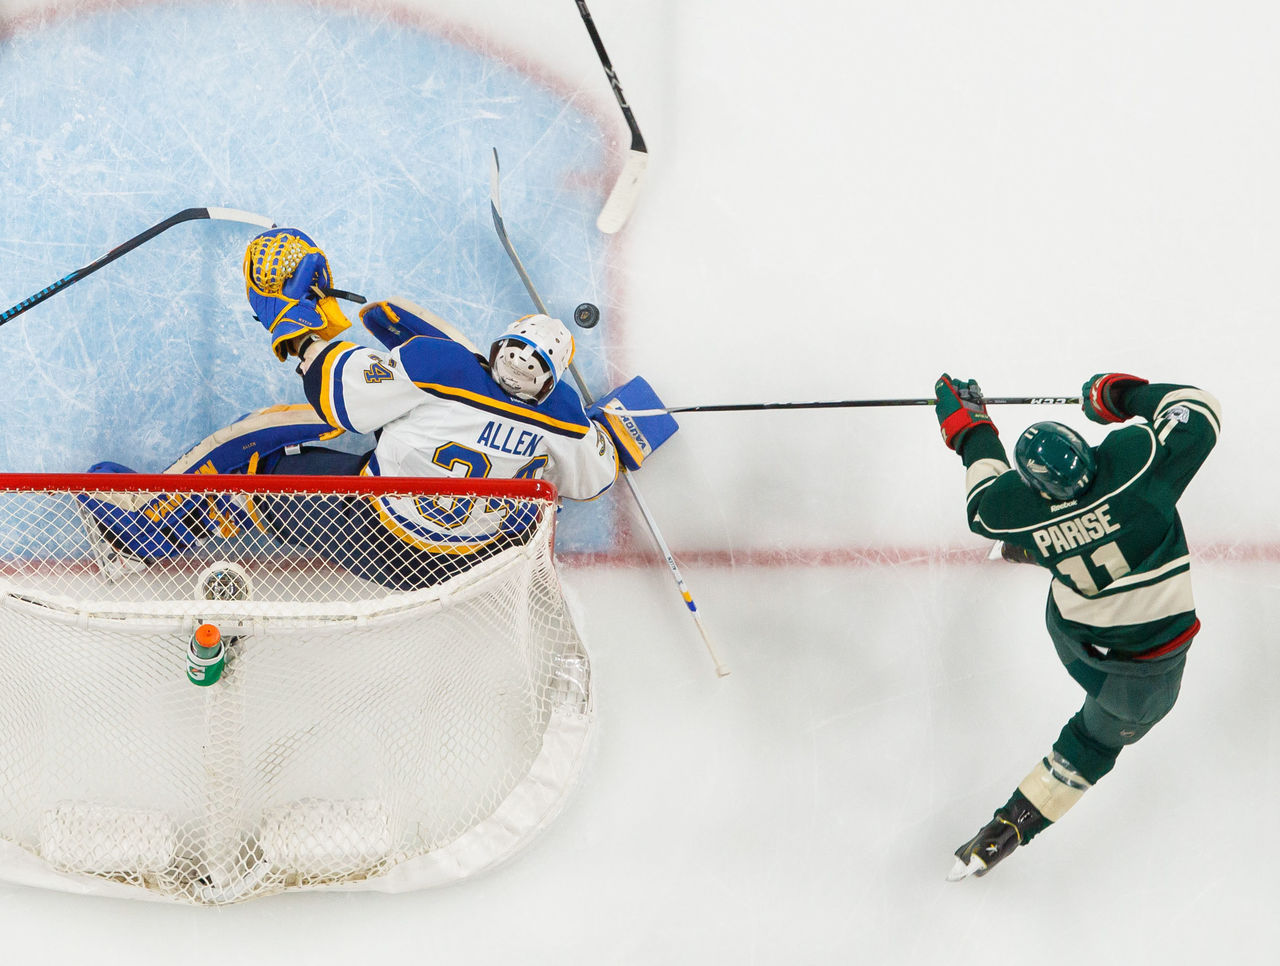 Cropped 2017 04 22t233037z 1656514238 nocid rtrmadp 3 nhl stanley cup playoffs st louis blues at minnesota wild